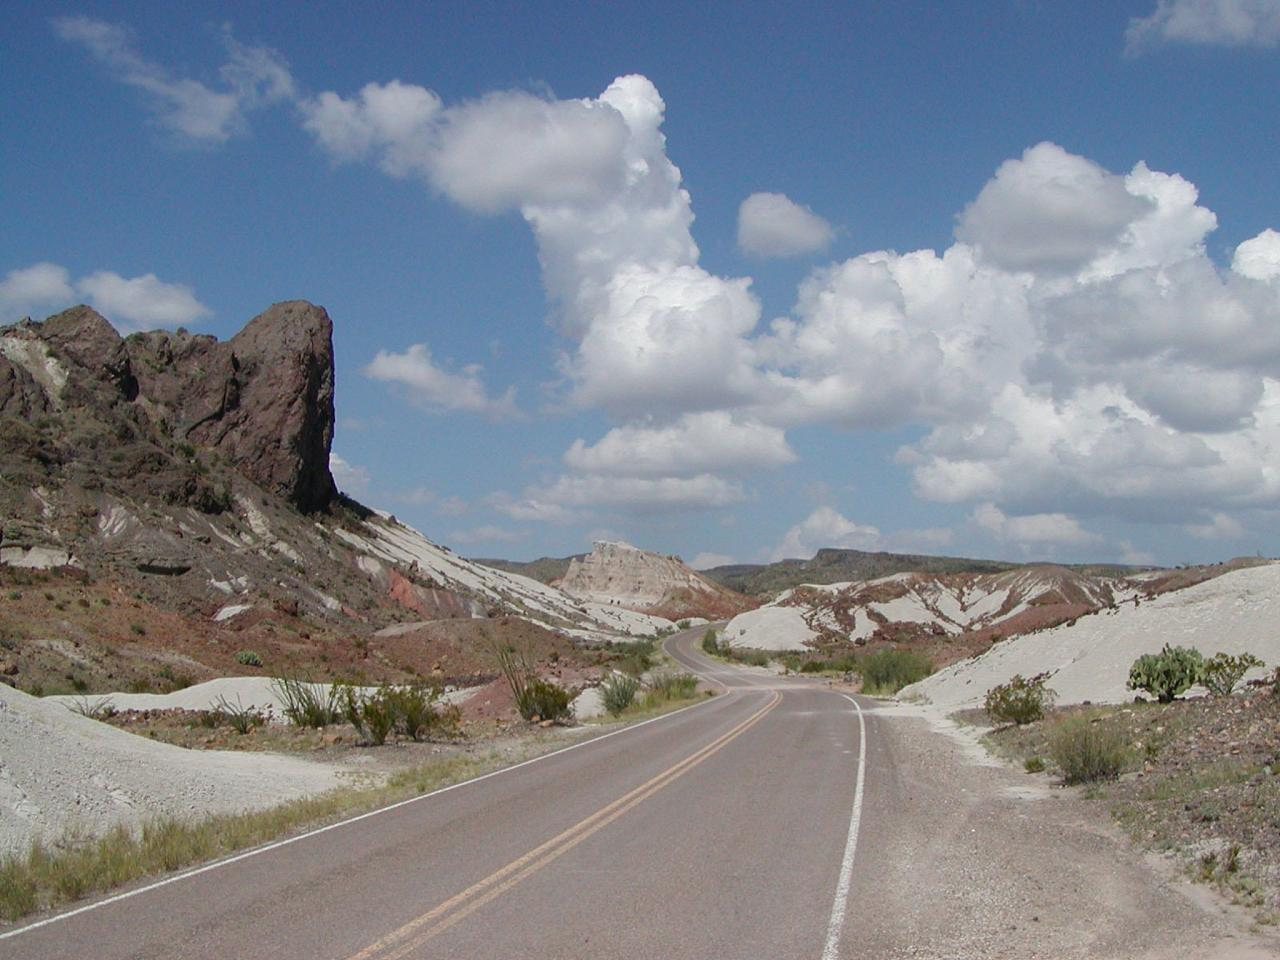 Road to Castolon, Texas, Big Bend, Big Bend National Park, Texas Nature Tour, Texas Birding Tour, Big Bend Nature Tour, Big Bend Birding Tour, Naturalist Journeys